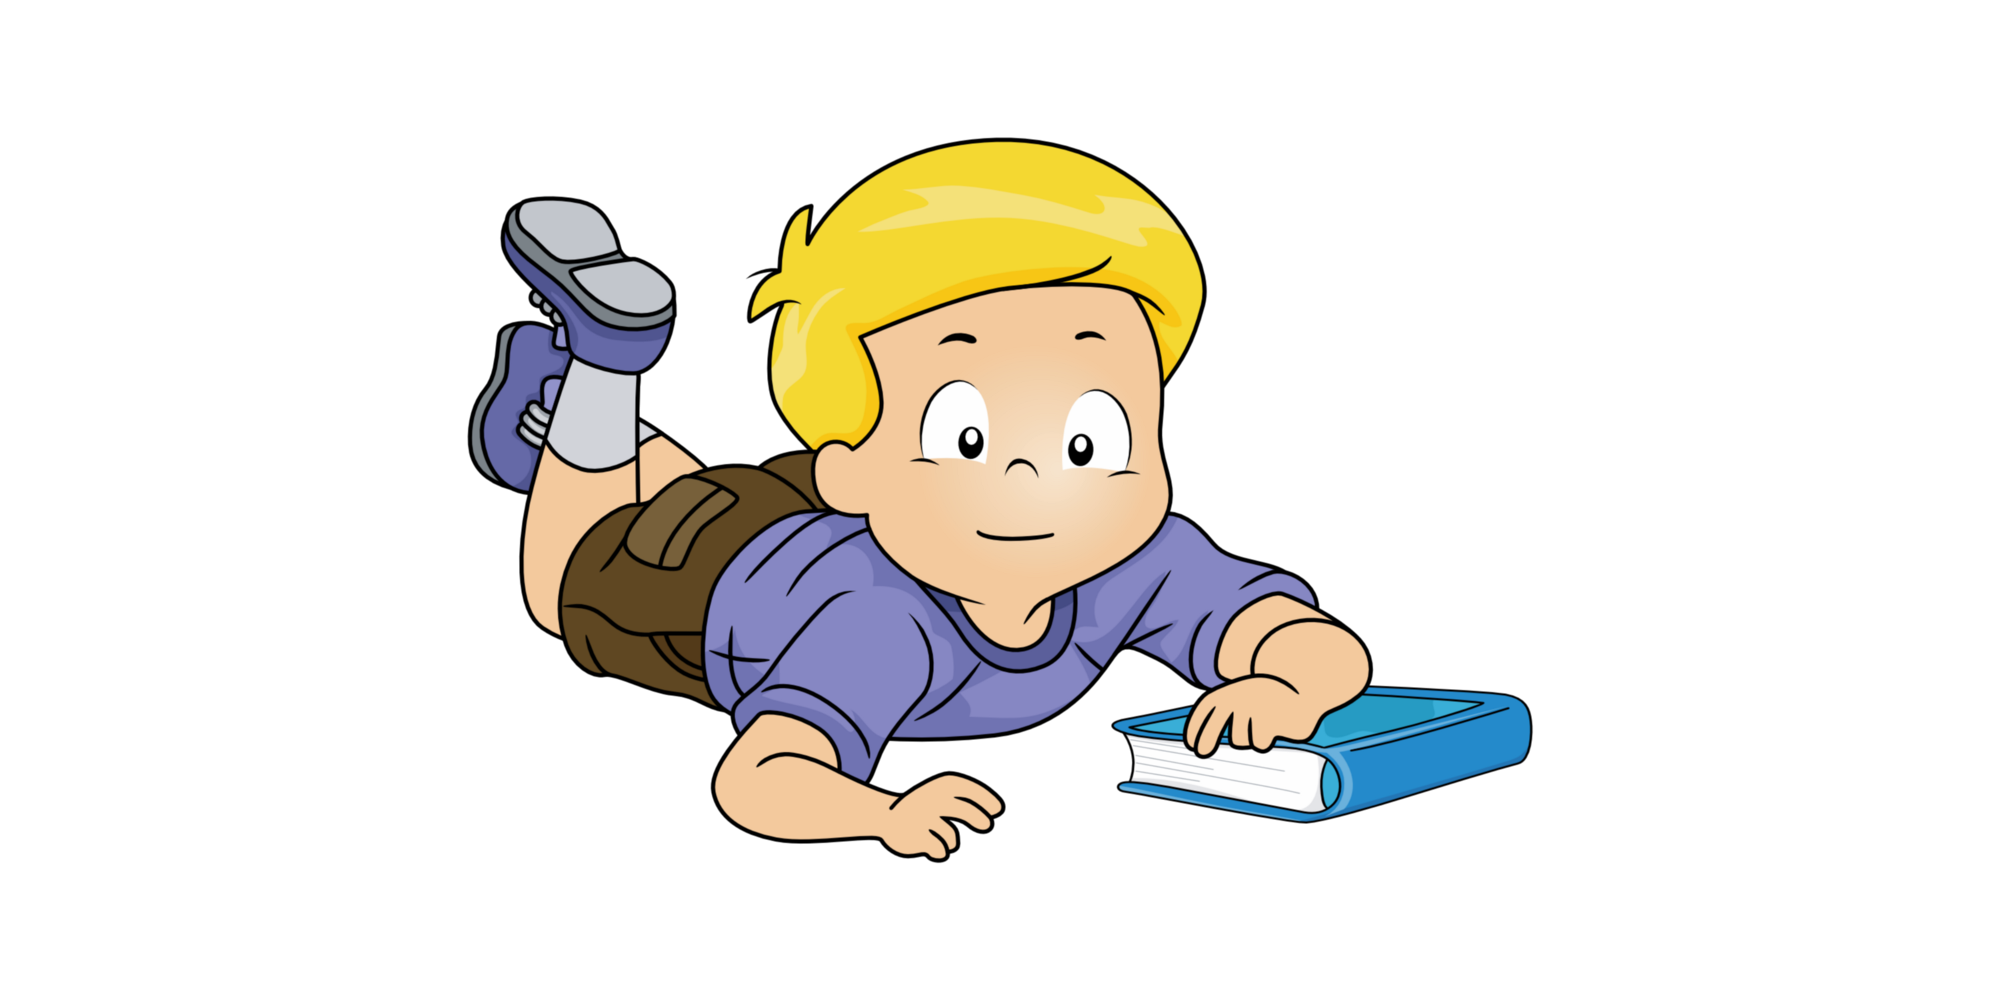 Lying down on the. Support clipart caregiver